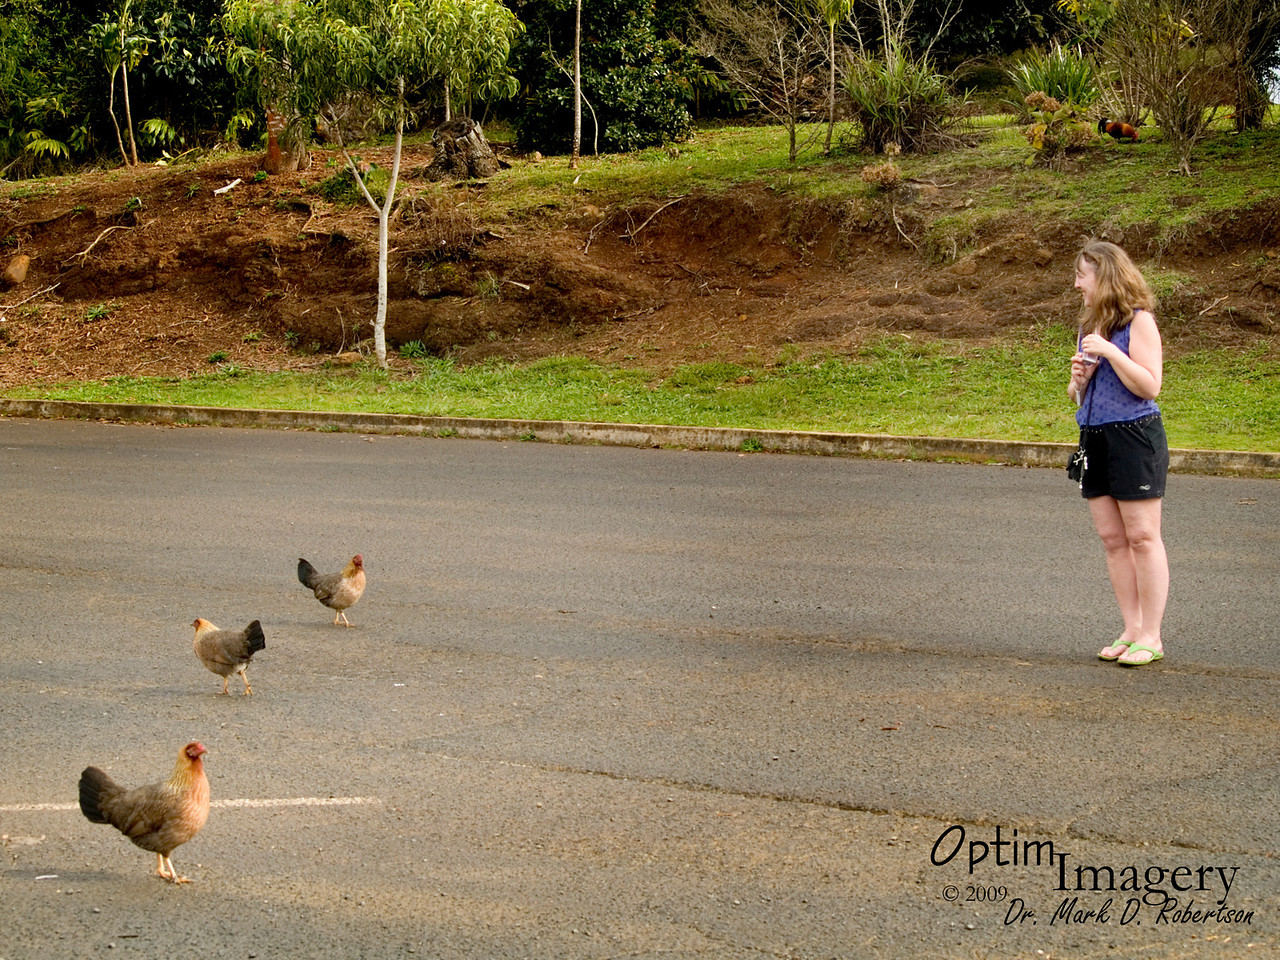 Photographic PROOF that, when given a choice, two out of three hens will face Bev.